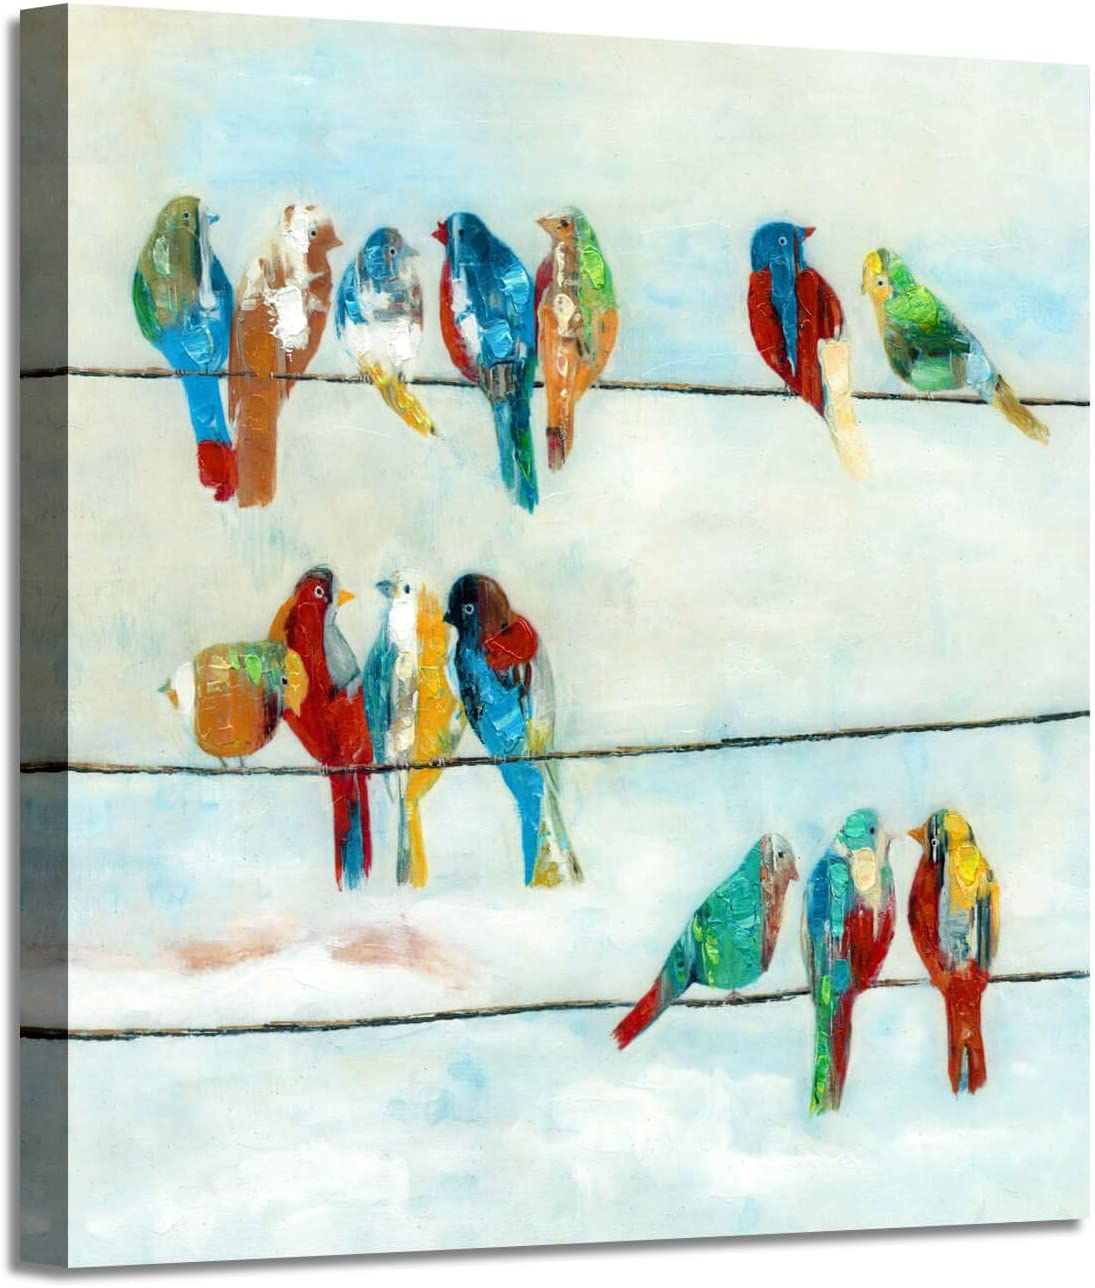 Abstract Animals Canvas Wall Art: Colorful Wires a on Birds B Max 65% OFF price